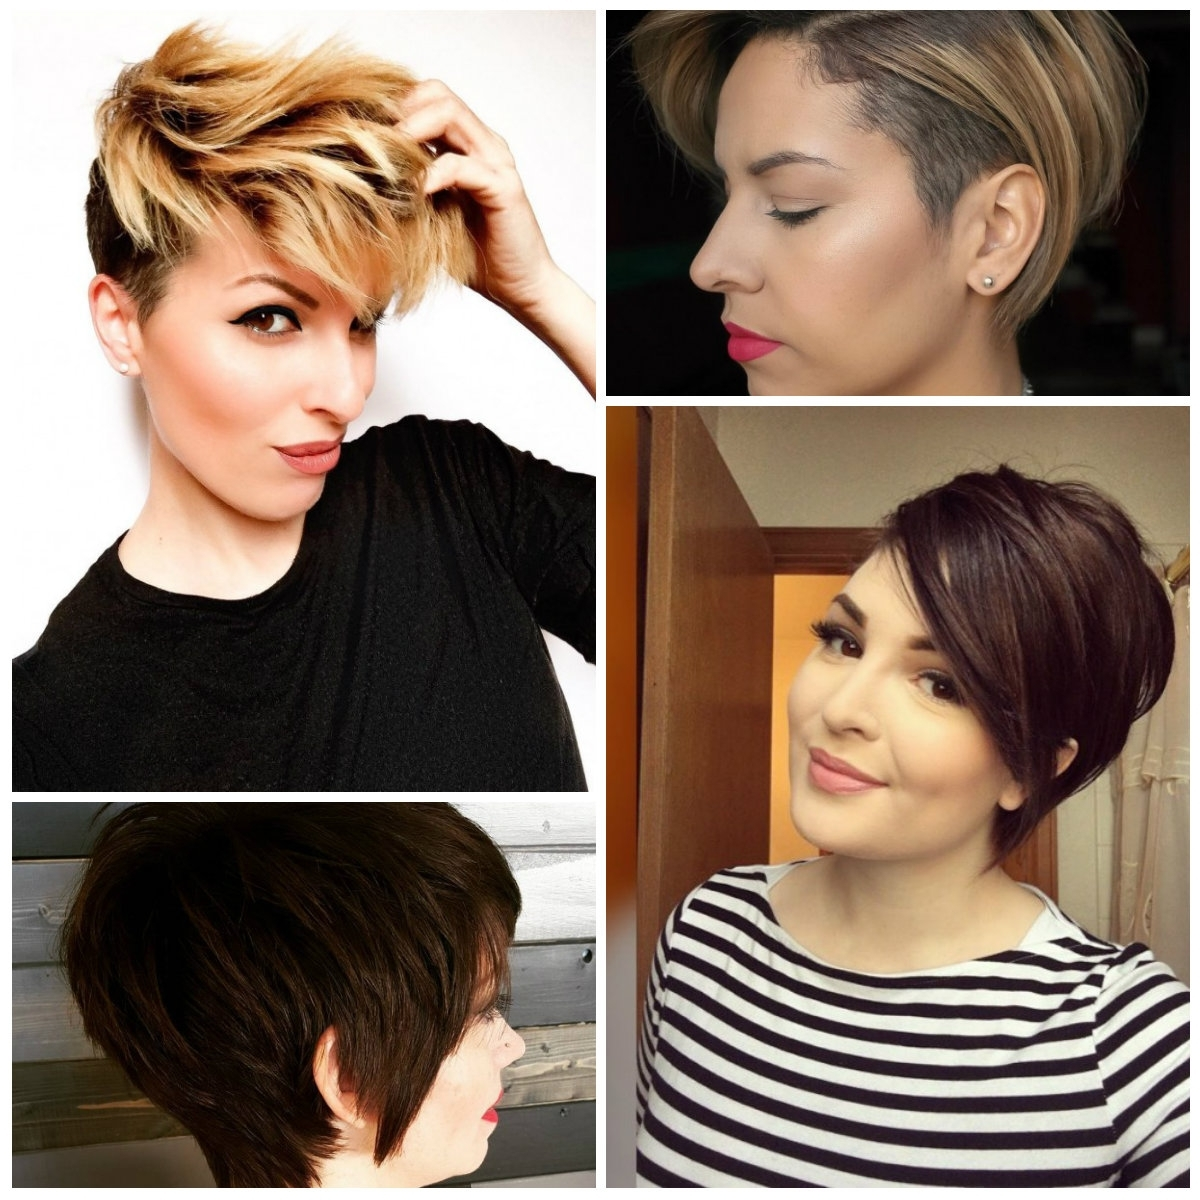 Long Pixie Haircuts For Ladies – Haircuts And Hairstyles For 2017 Pertaining To 2018 Pixie Hairstyles For Long Faces (View 13 of 15)